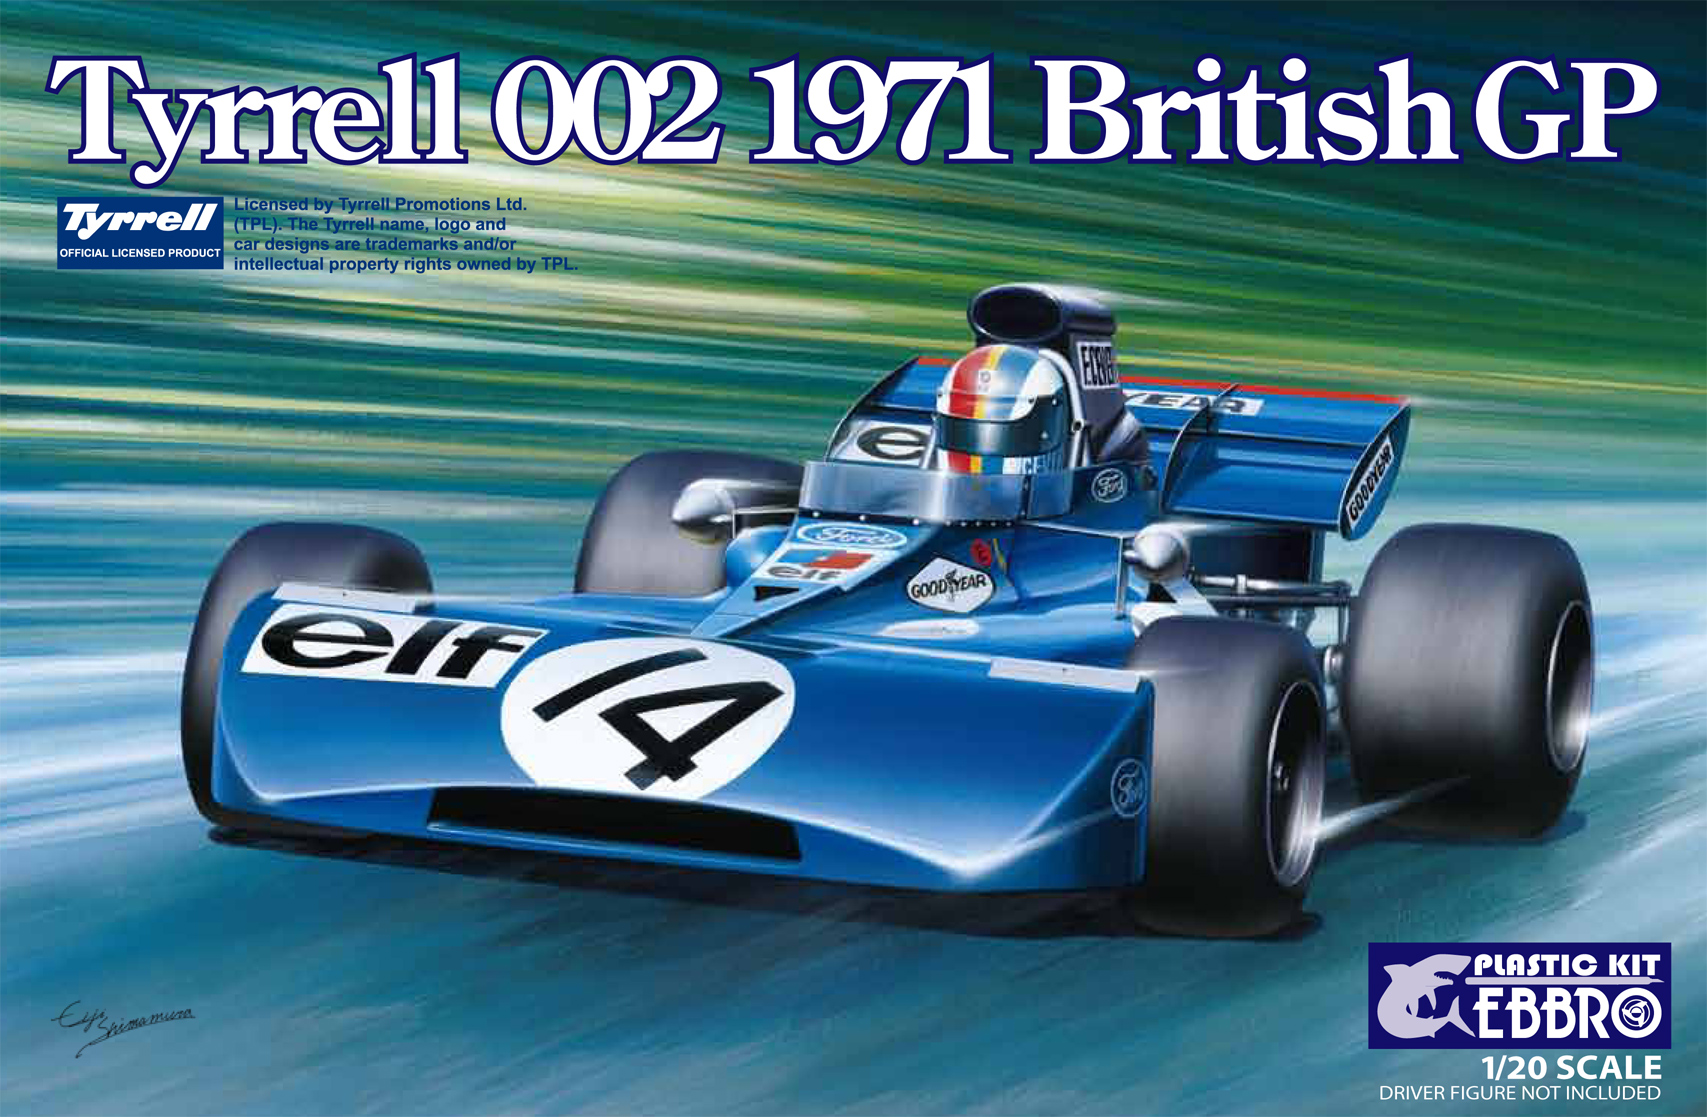 【20008】1/20 Tyrrell 002 British GP 1971 【PLASTIC KIT】